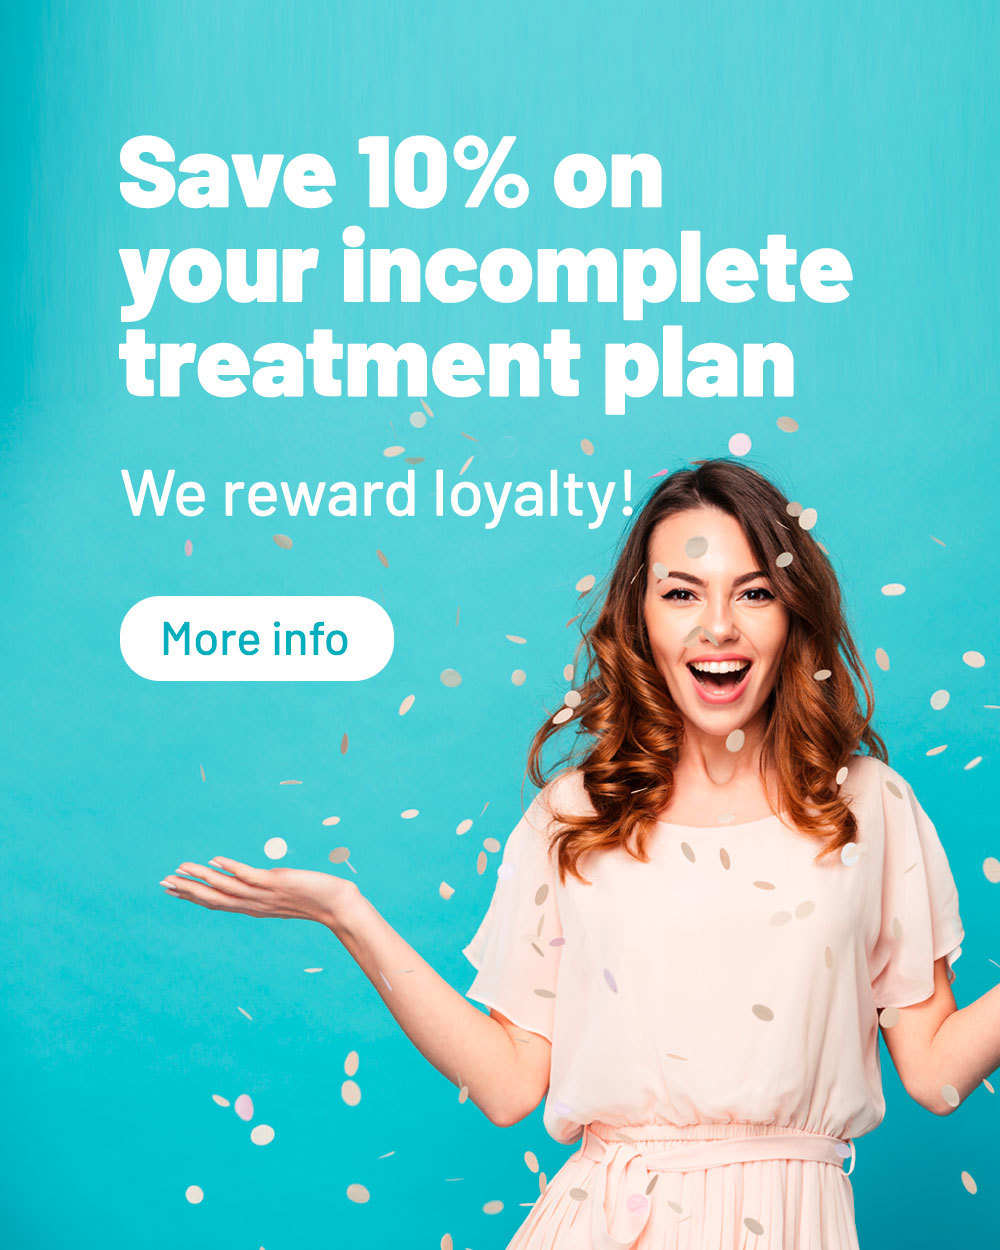 ntd-web-ban-promo-mobile-loyalty